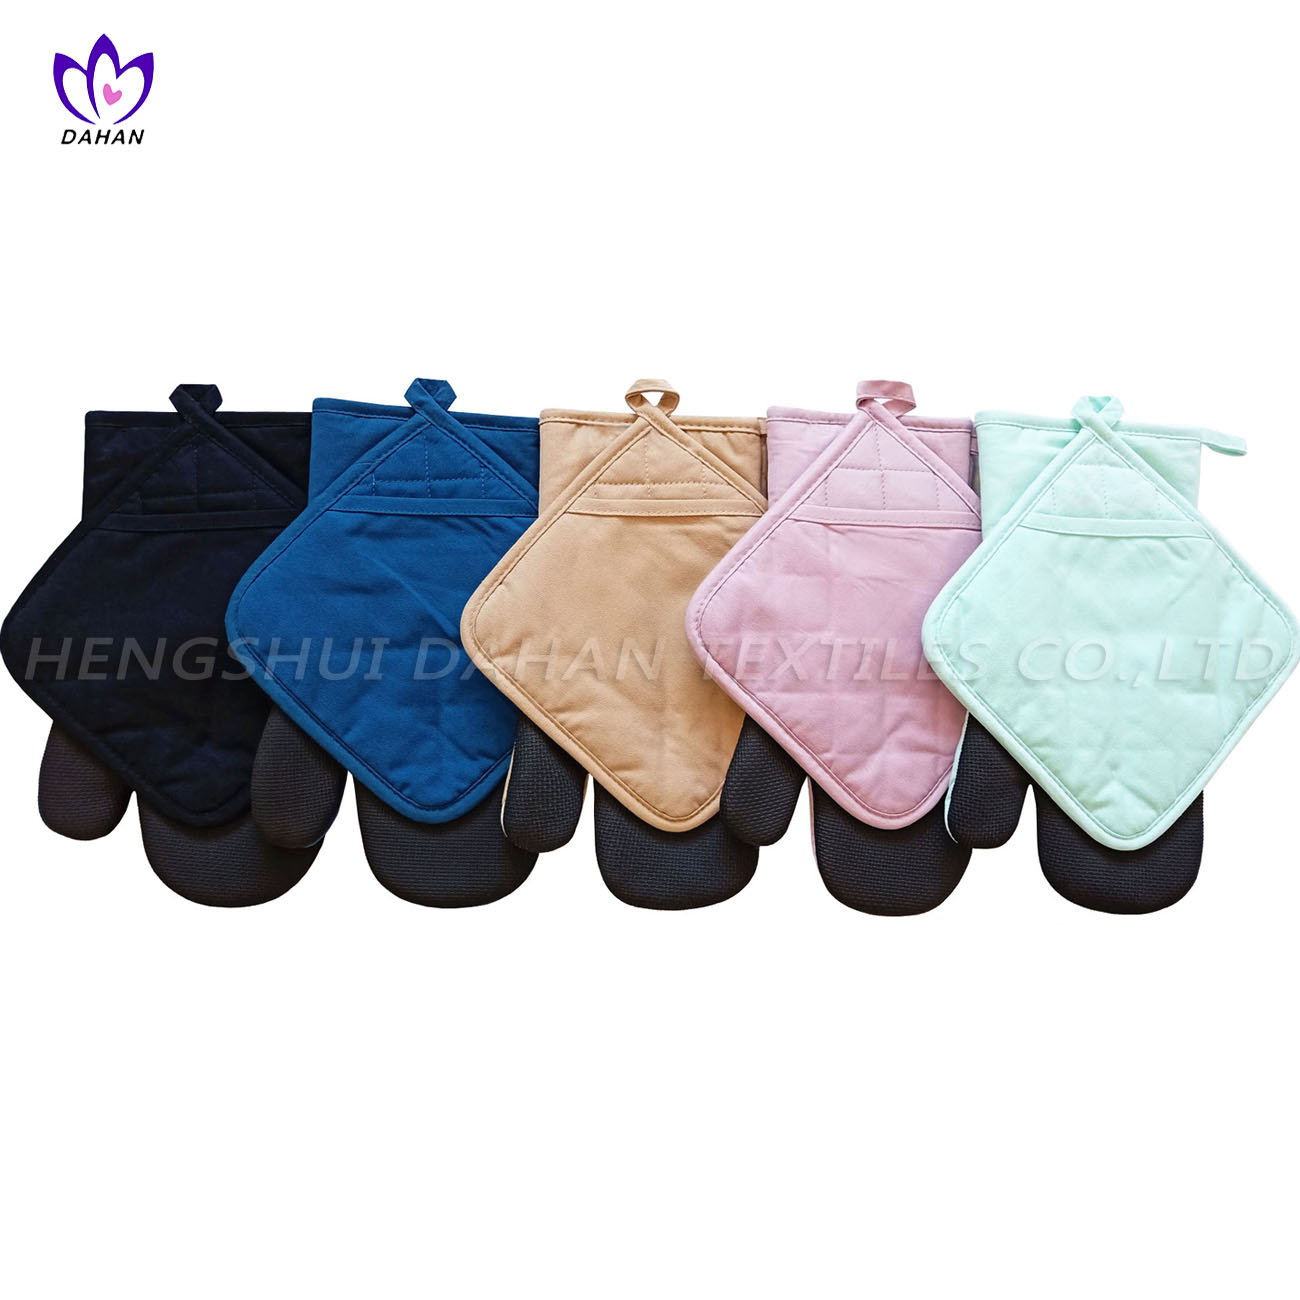 7389 Solid color polycotton neoprene glove, pot pad 2pack.